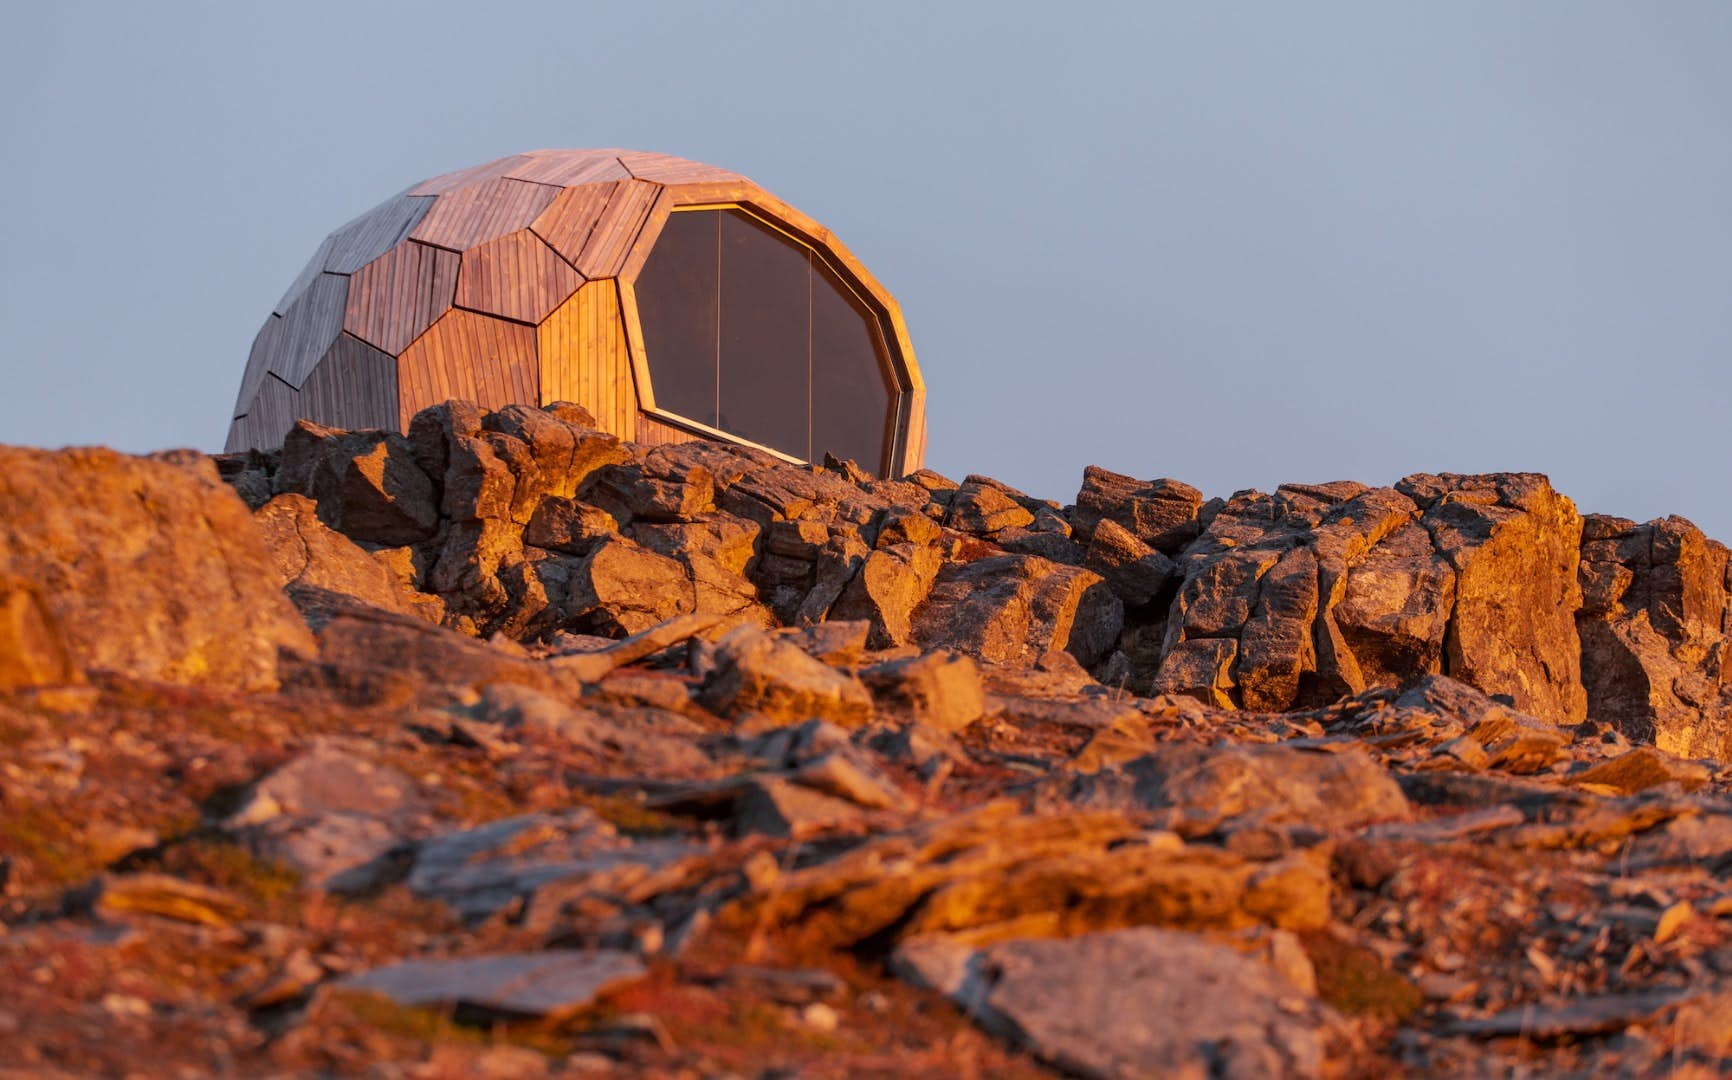 Prefab mountaintop cabin provides protection for hikers